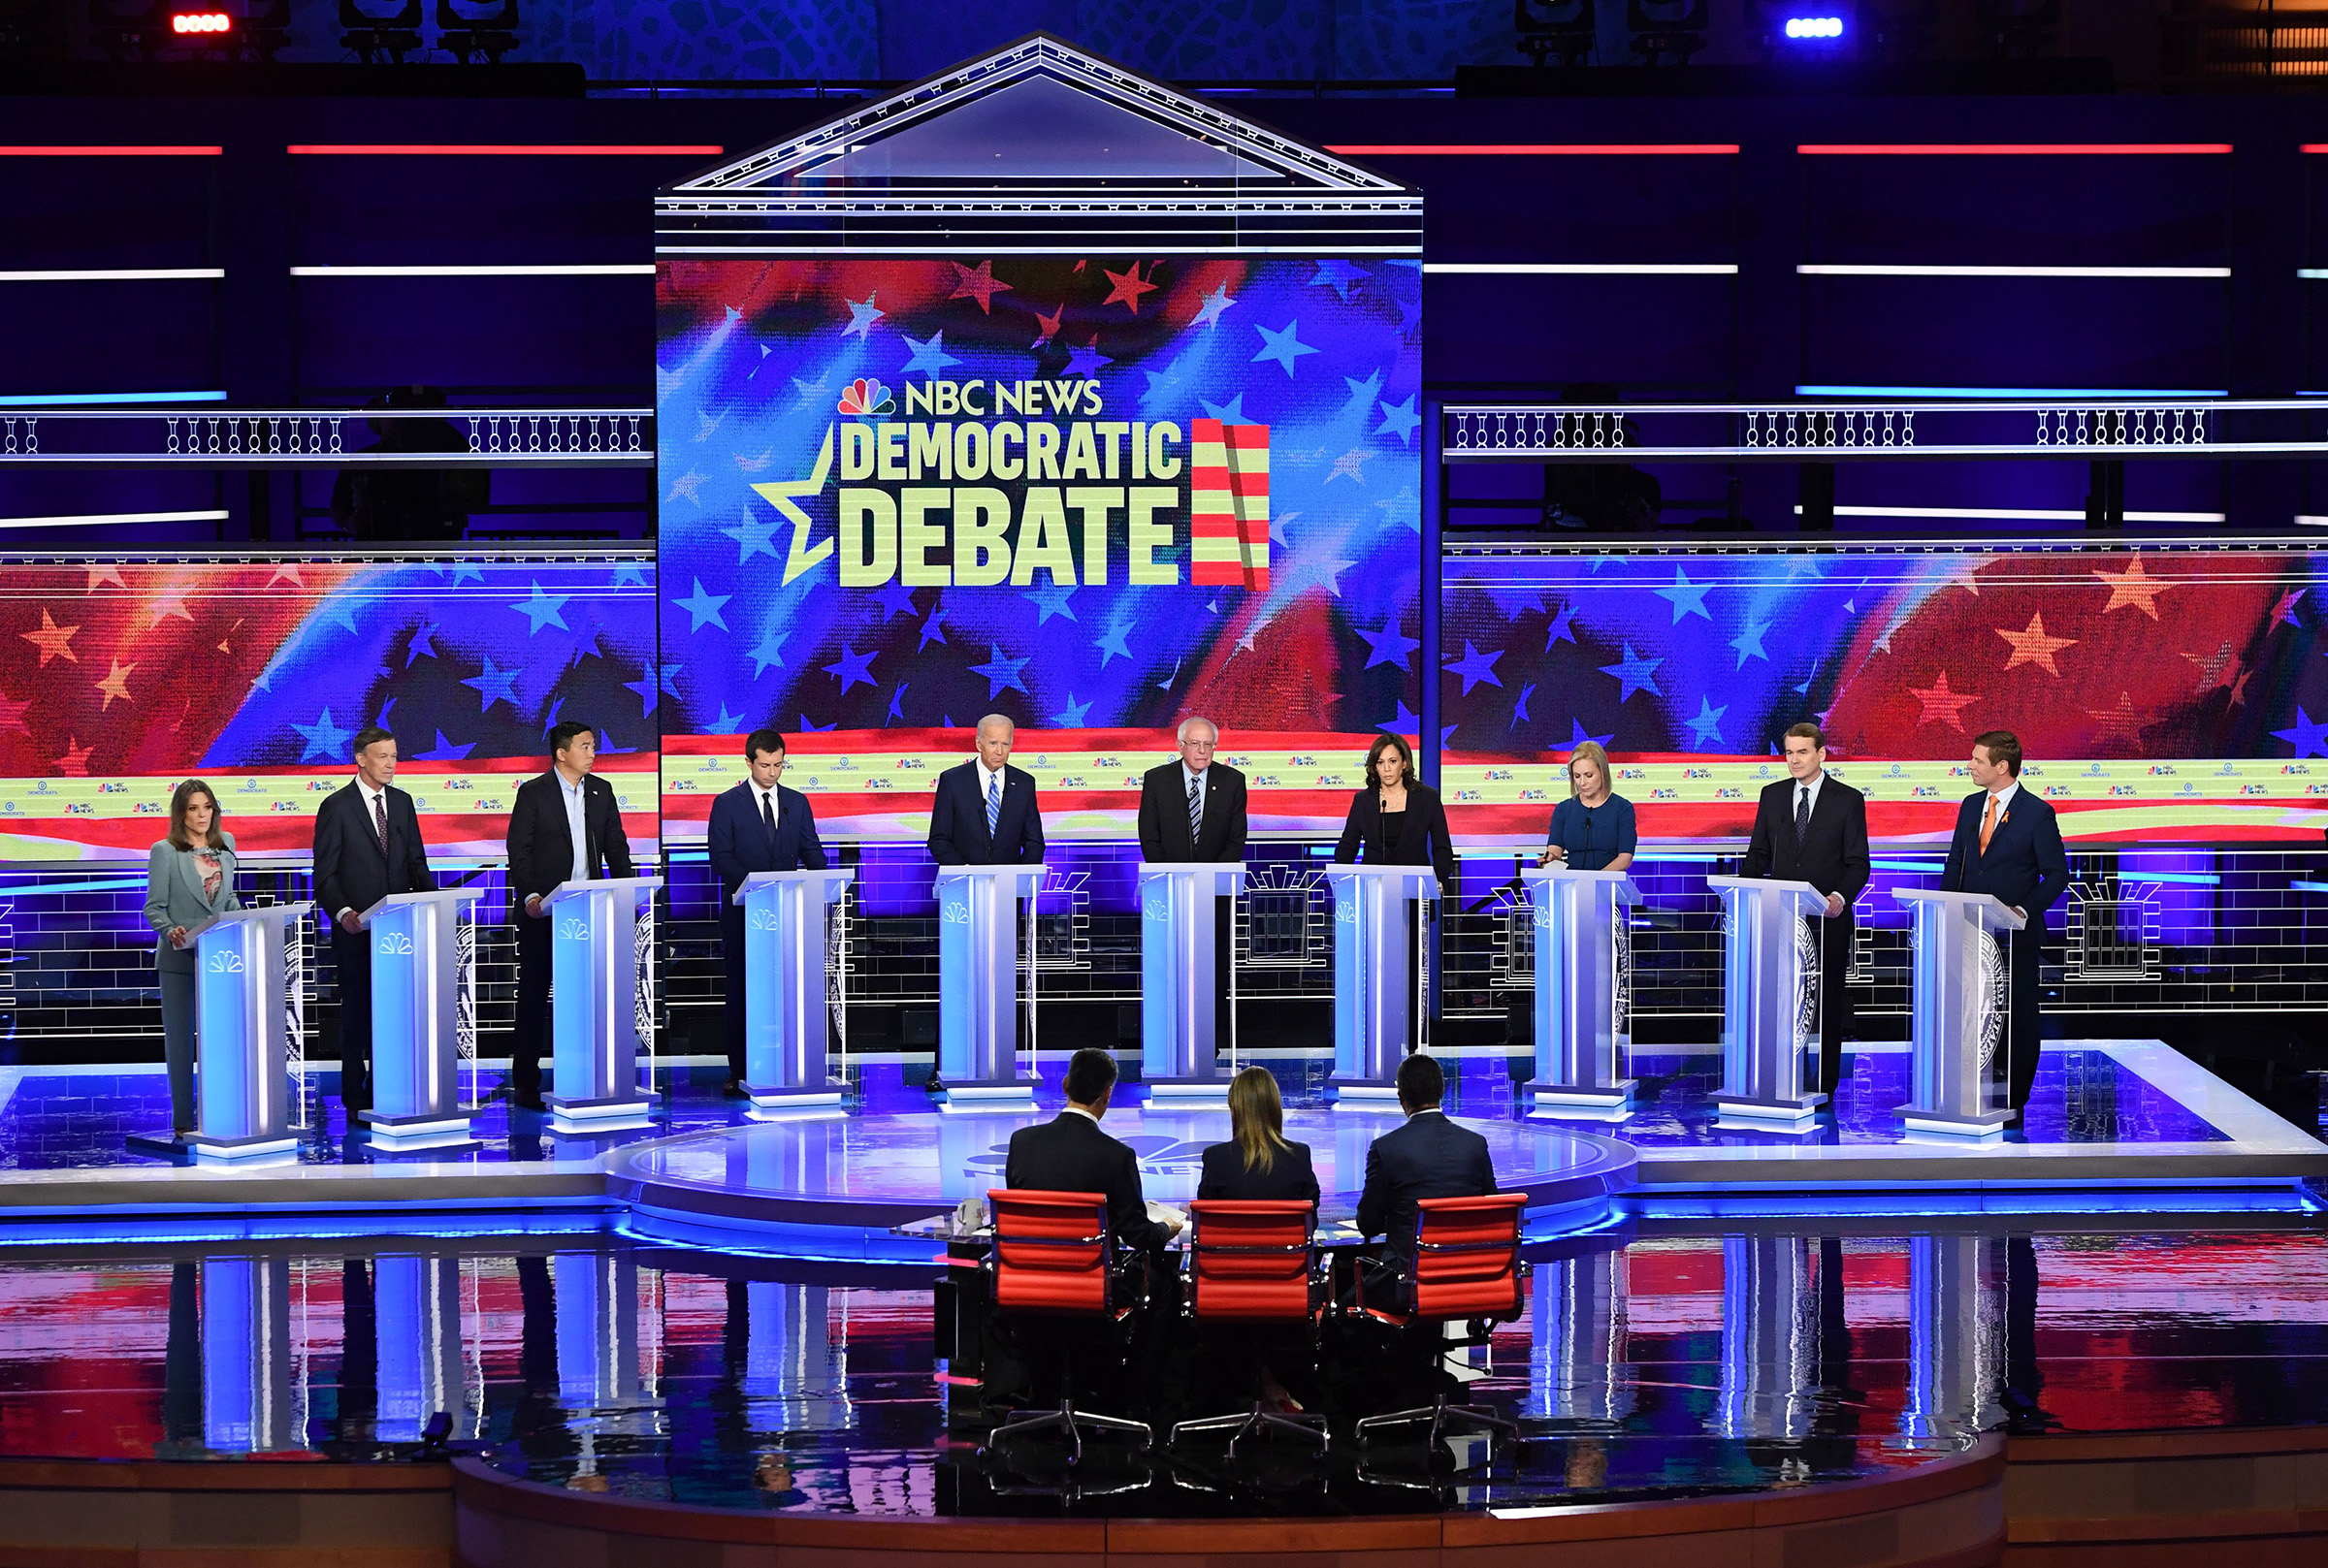 Democratic presidential hopefuls participate in the second Democratic primary debate of the 2020 presidential campaign season hosted by NBC News at the Adrienne Arsht Center for the Performing Arts in Miami, Florida, June 27, 2019.